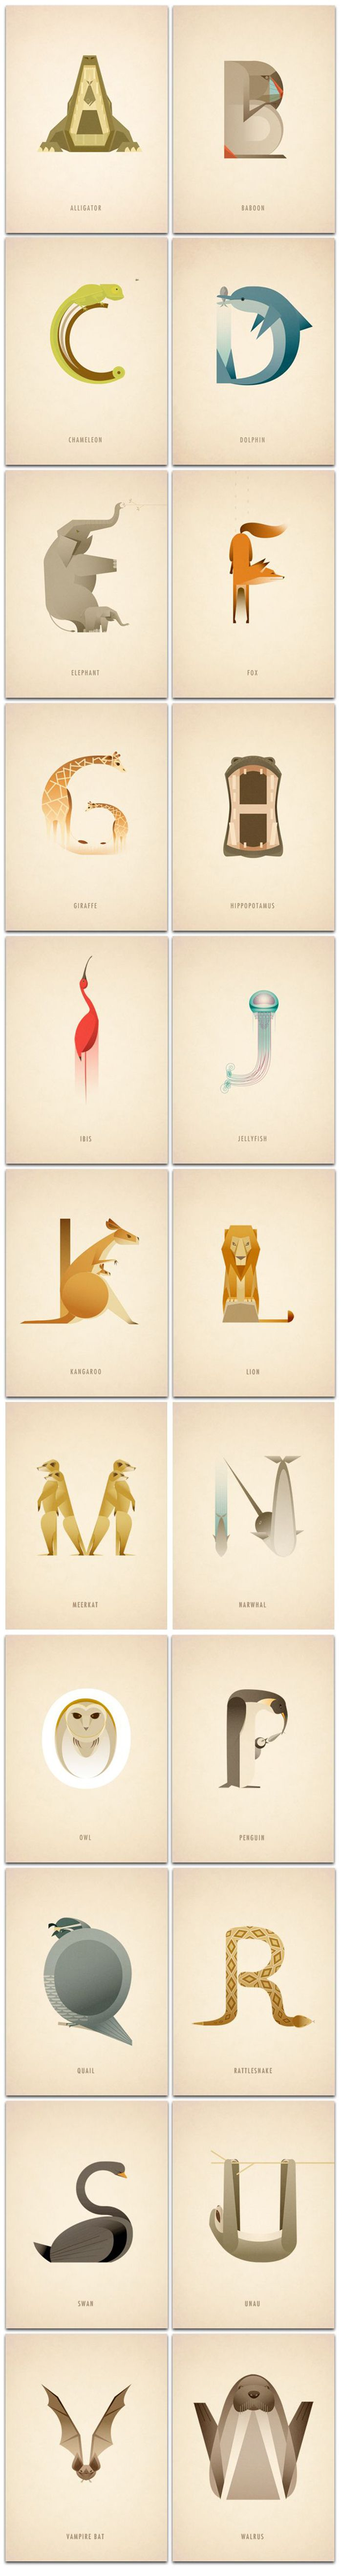 vintage animal typography